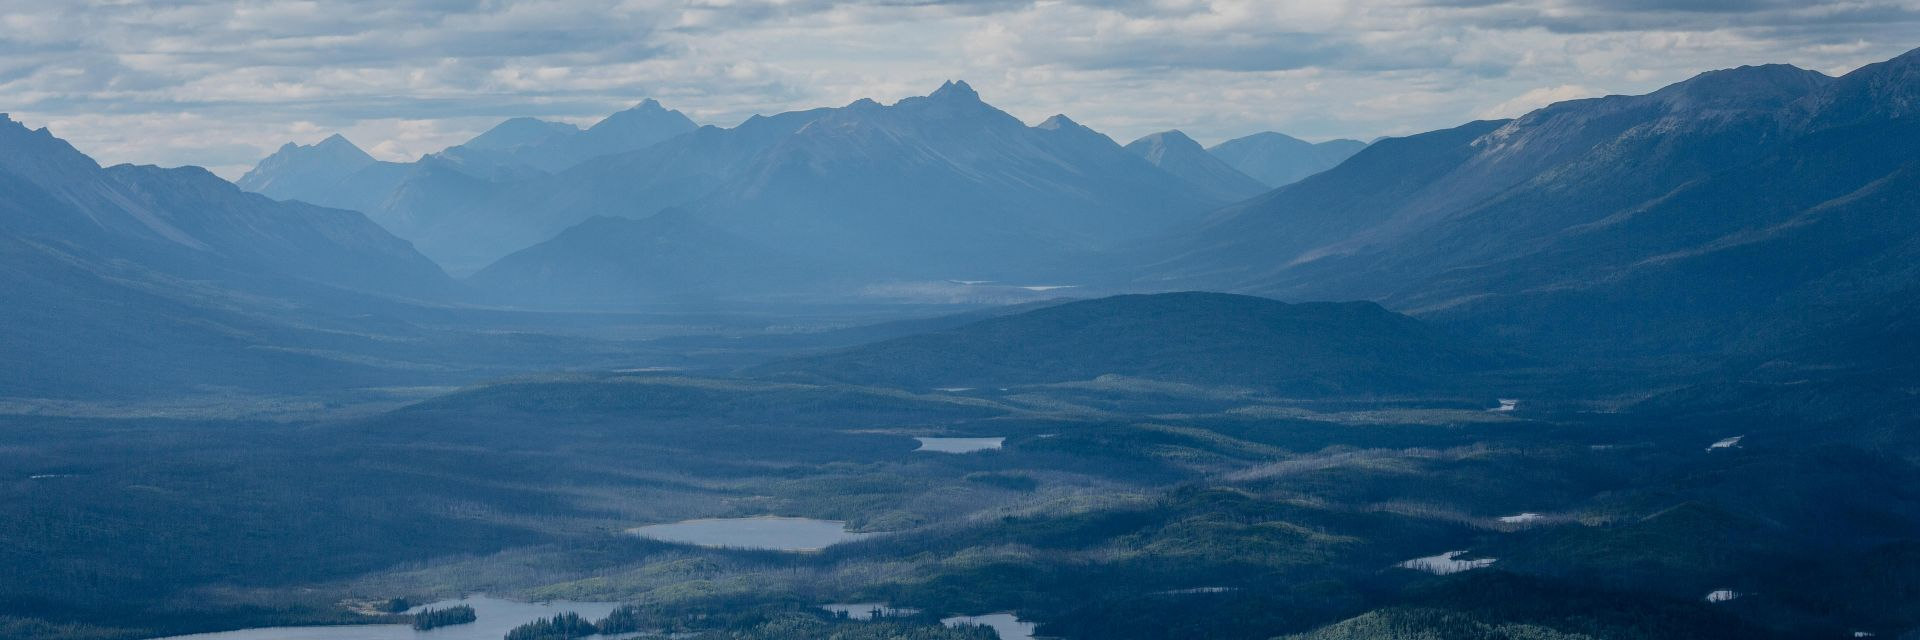 Hiking overview shot of at Shoulder Mountain Alpine Camp in Stikine Region